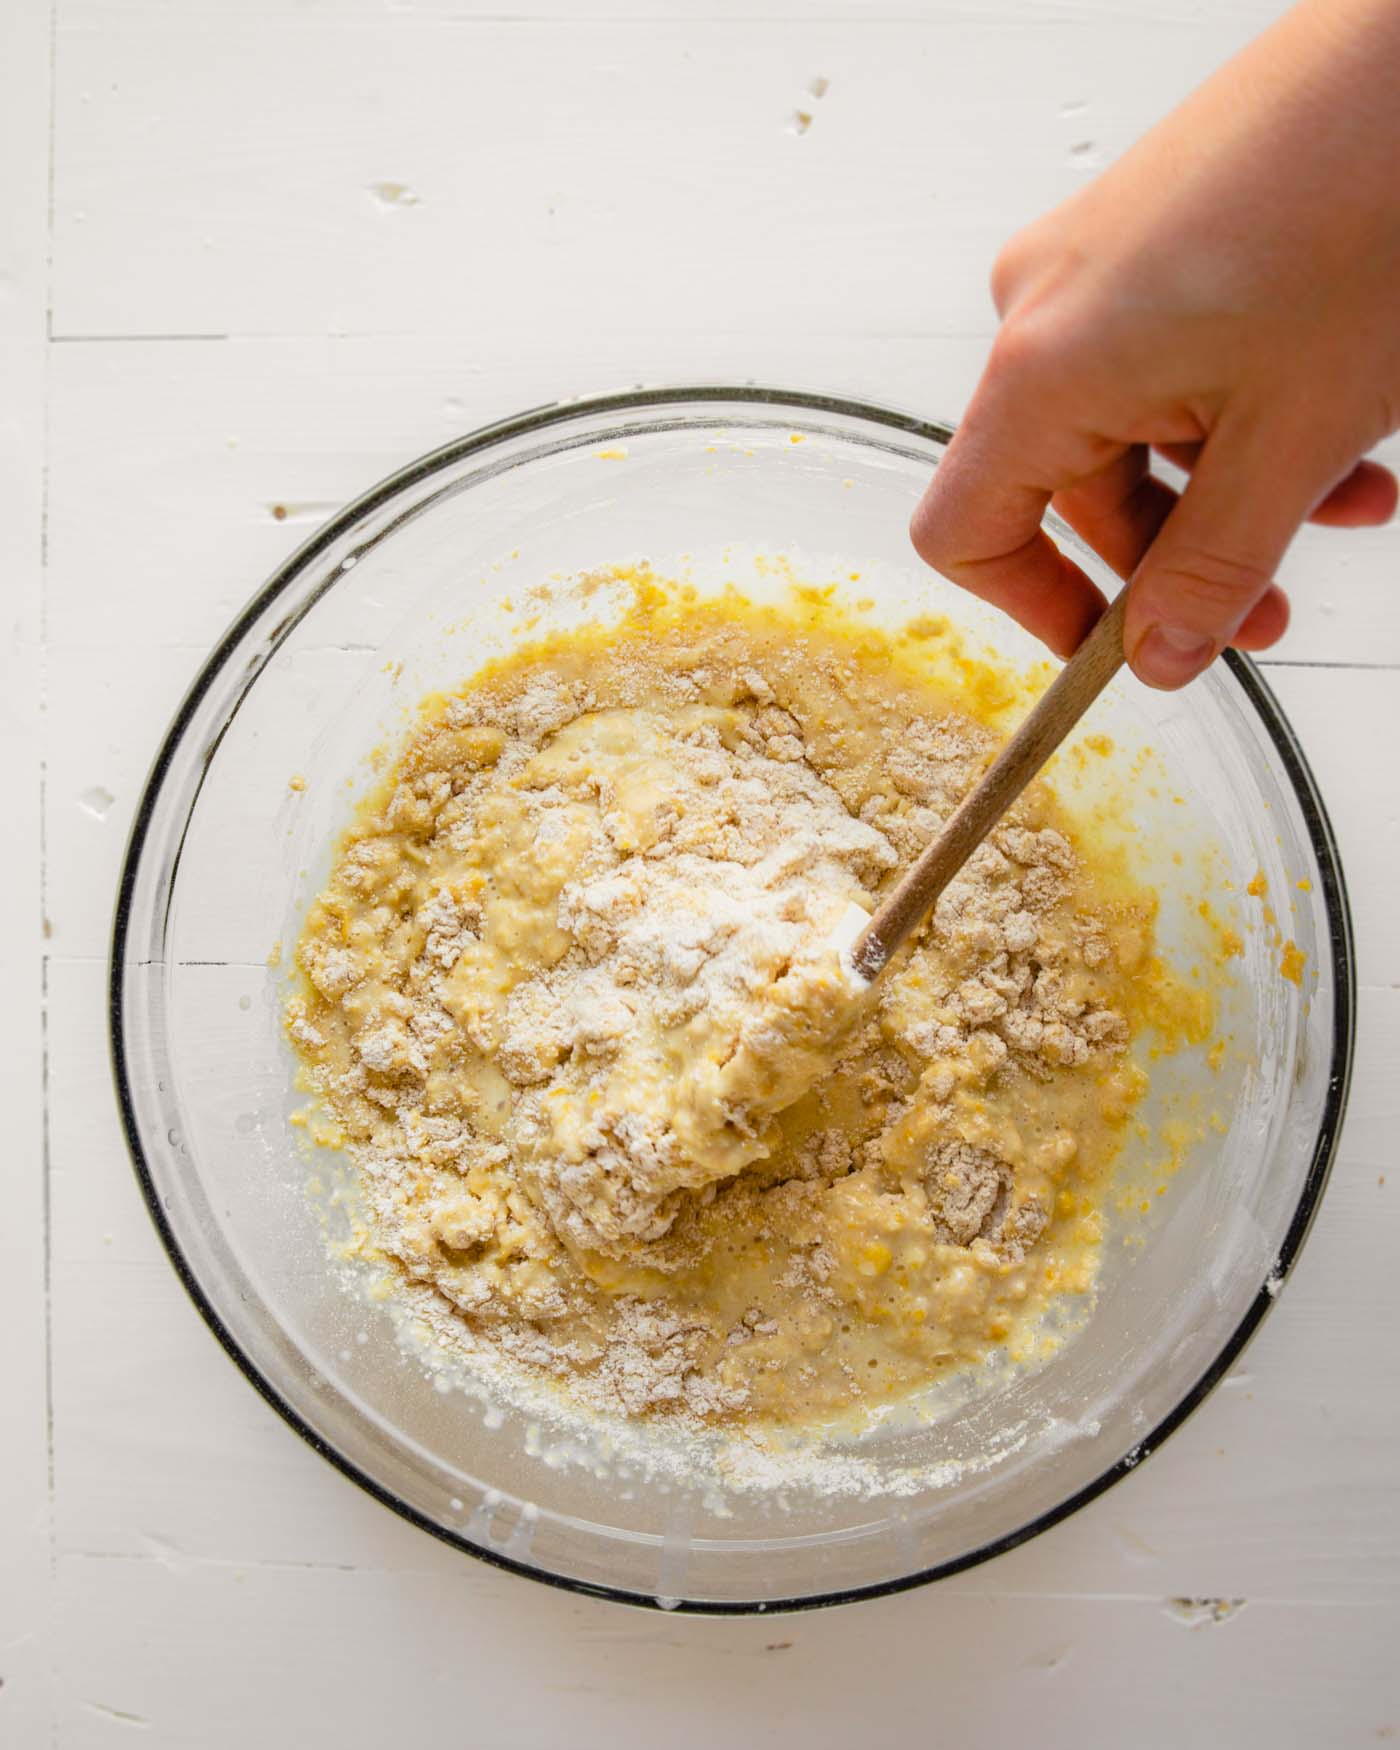 Overhead photo of batter being mixed together in a glass bowl set on a white table